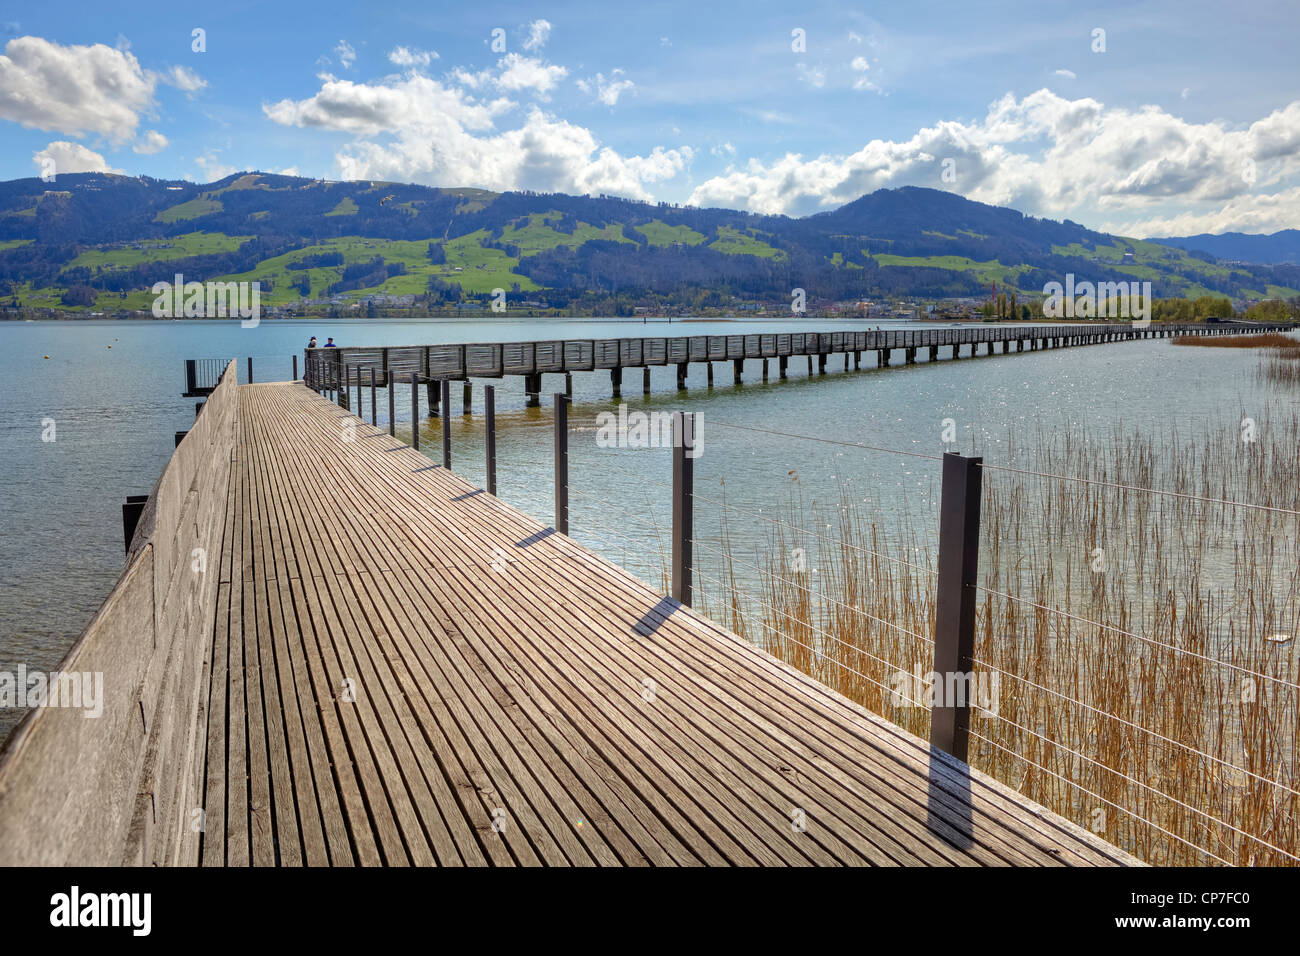 Wooden bridge Rapperswil-Hurden, Upper Lake, St. Gallen, Switzerland - Stock Image